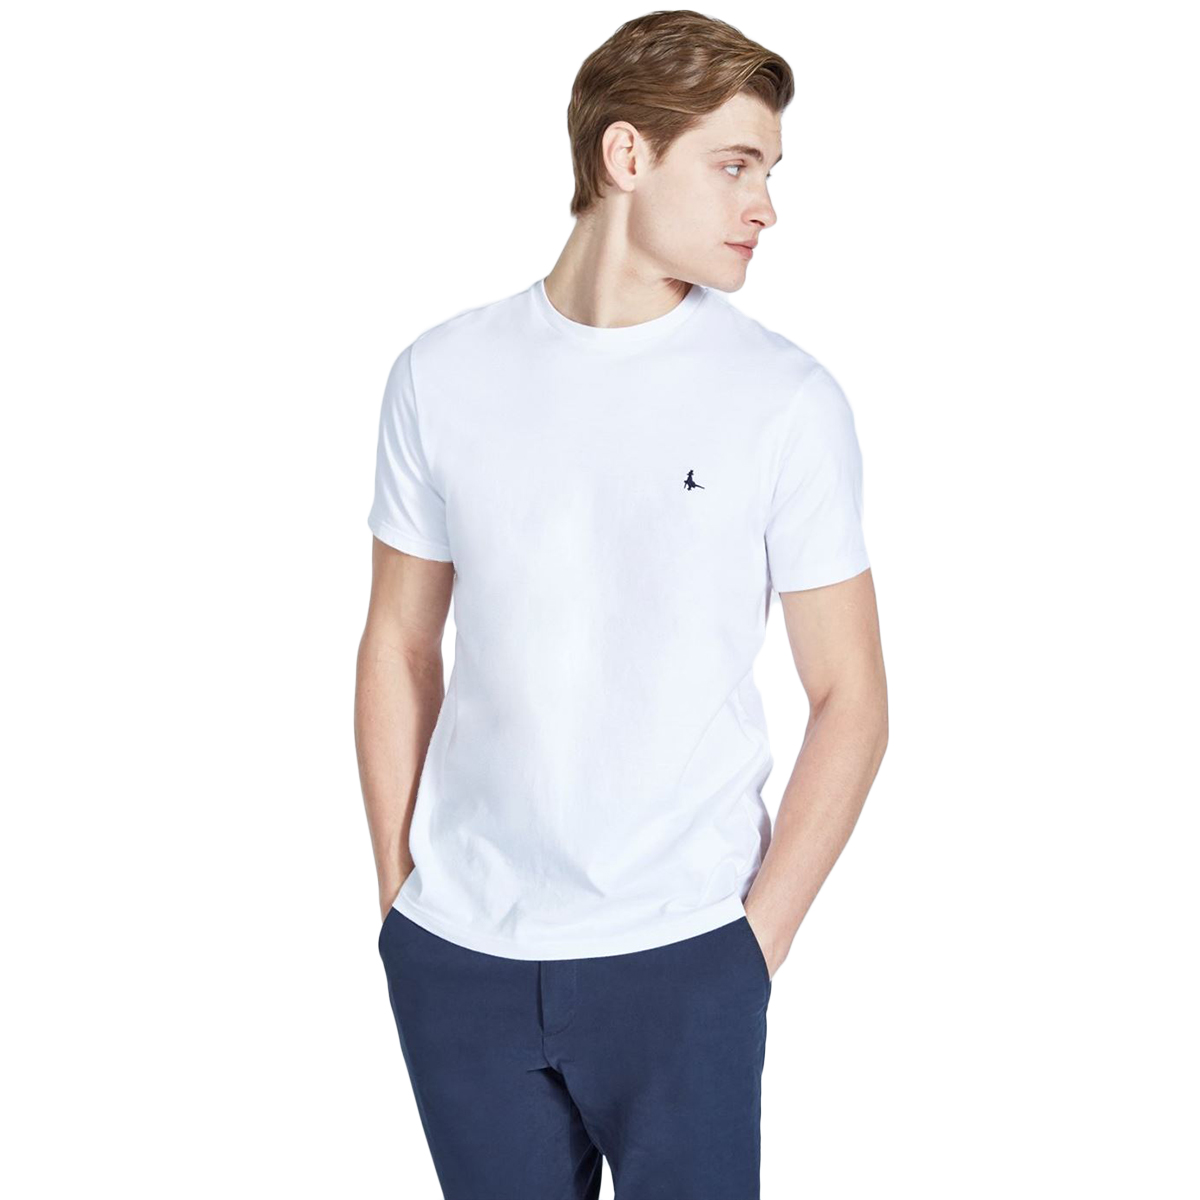 Jack Wills Men's Sandleford Short-Sleeve Tee - White, M